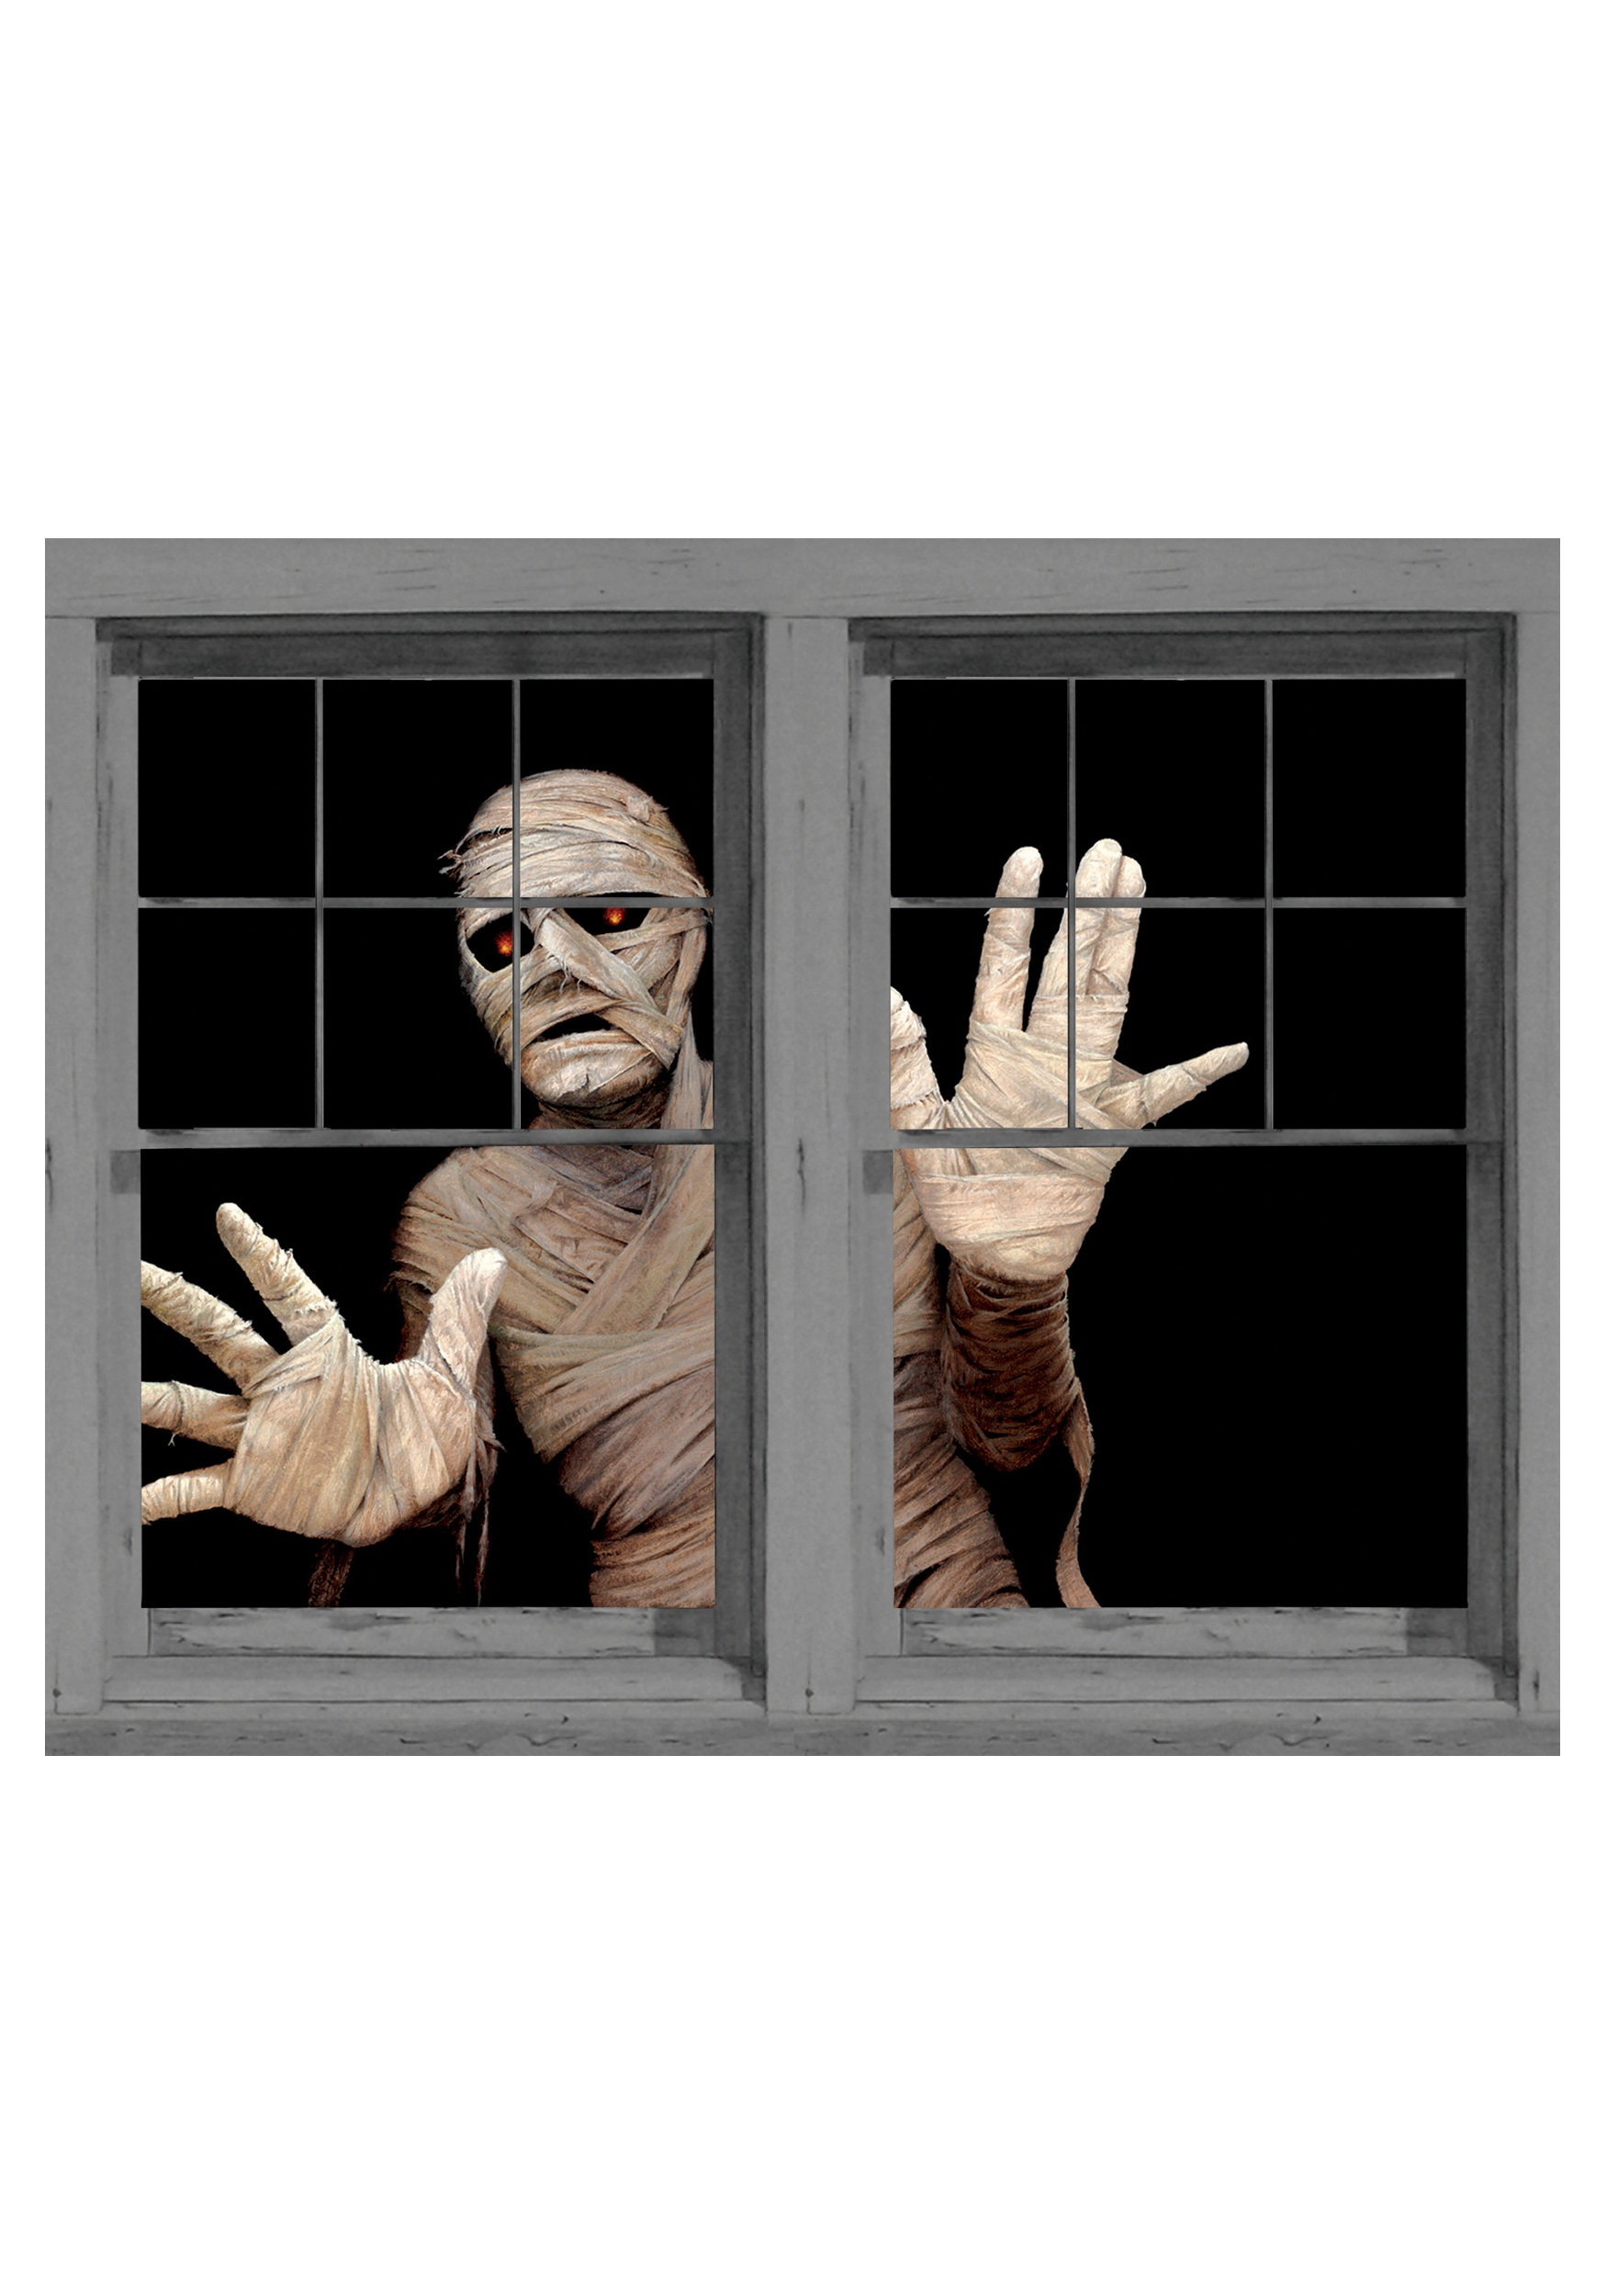 Egyptian Mummy Window Cling Scary Window Decorations